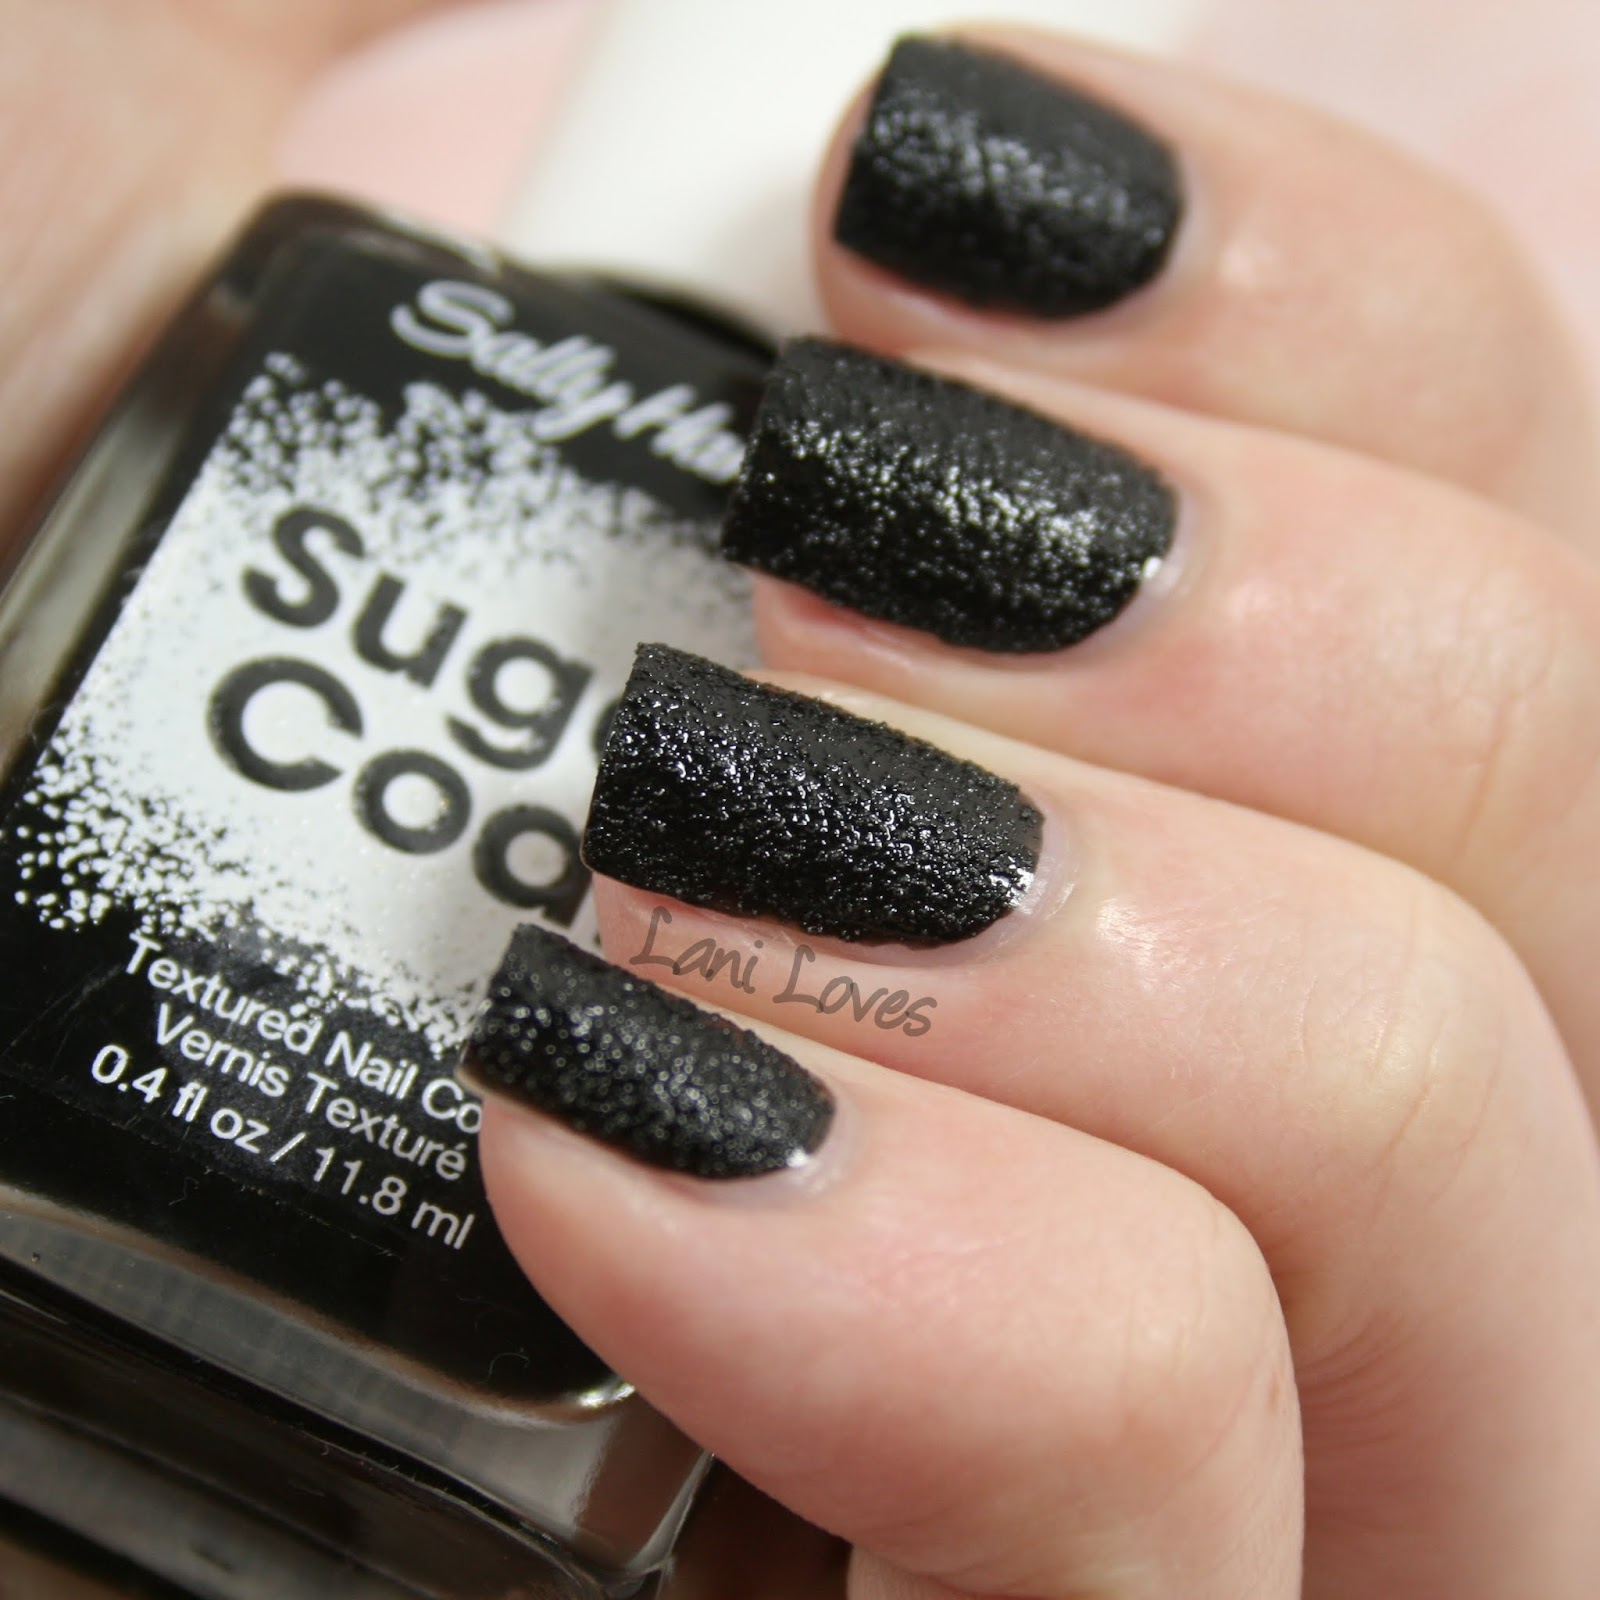 Sally Hansen Sugar Coat Lick-O-Rich Swatch